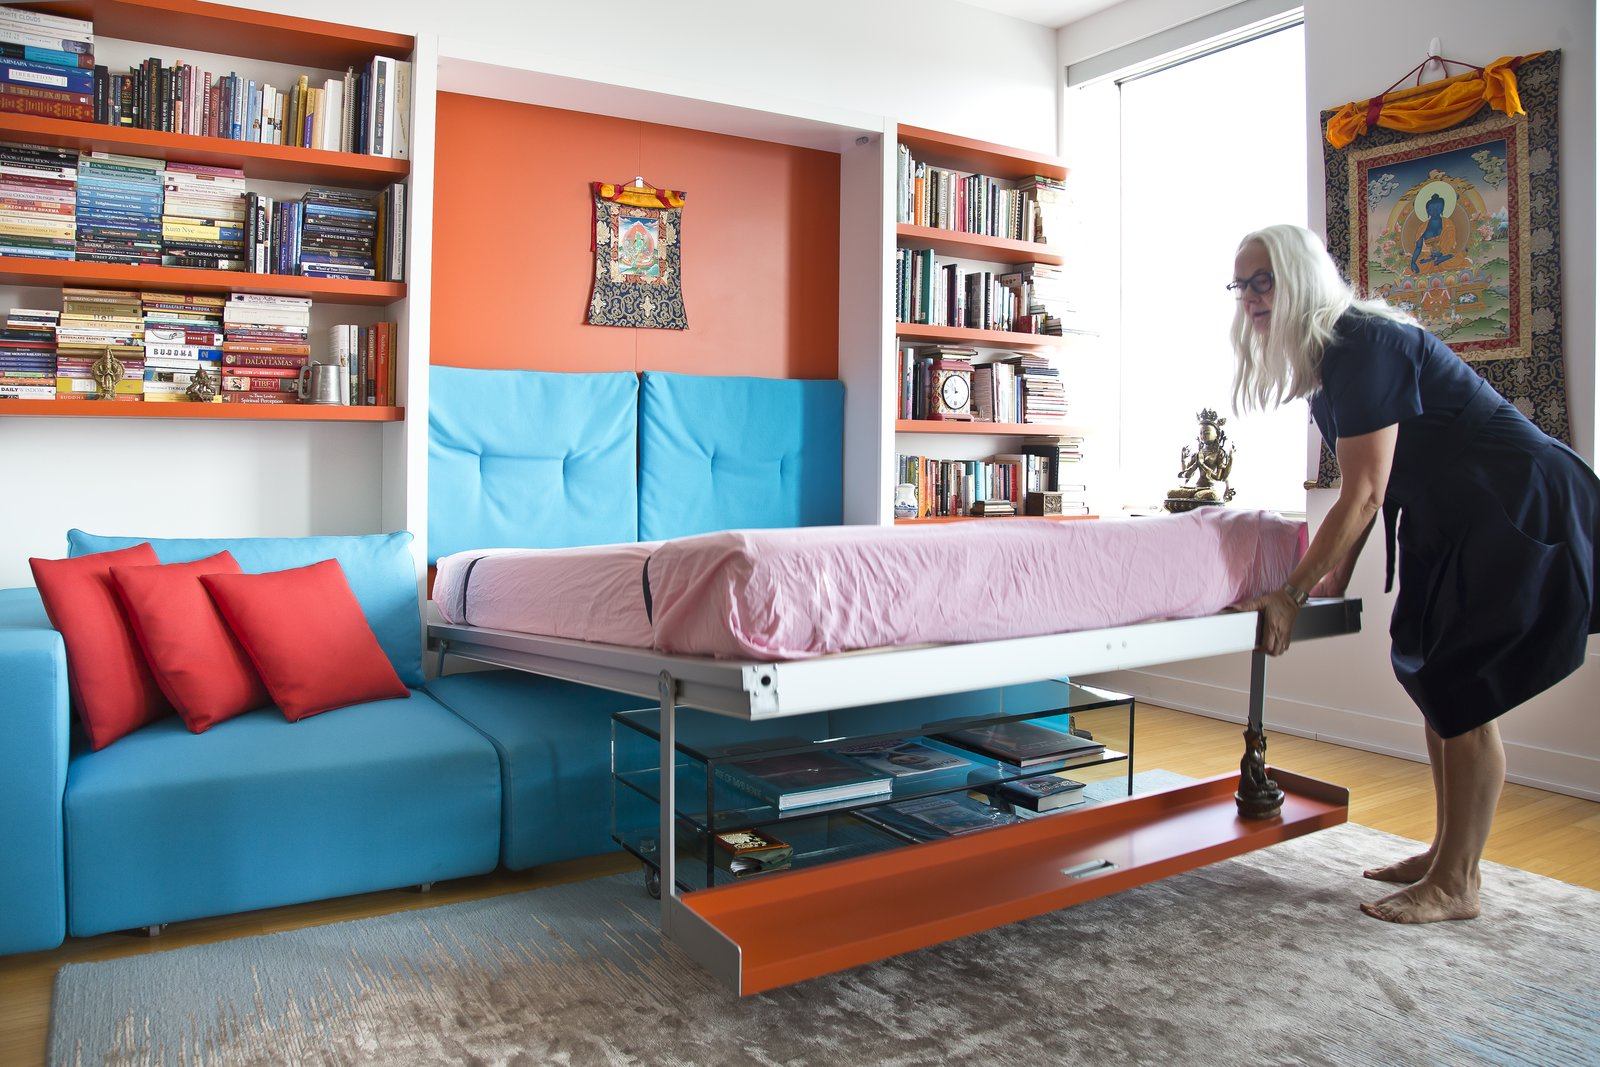 Photo 9 Of 18 In 16 Modern Murphy Bed Designs That Magically Create More Space From Two Film Industry Veterans Flip The Script With A Suburb To City Move Dwell